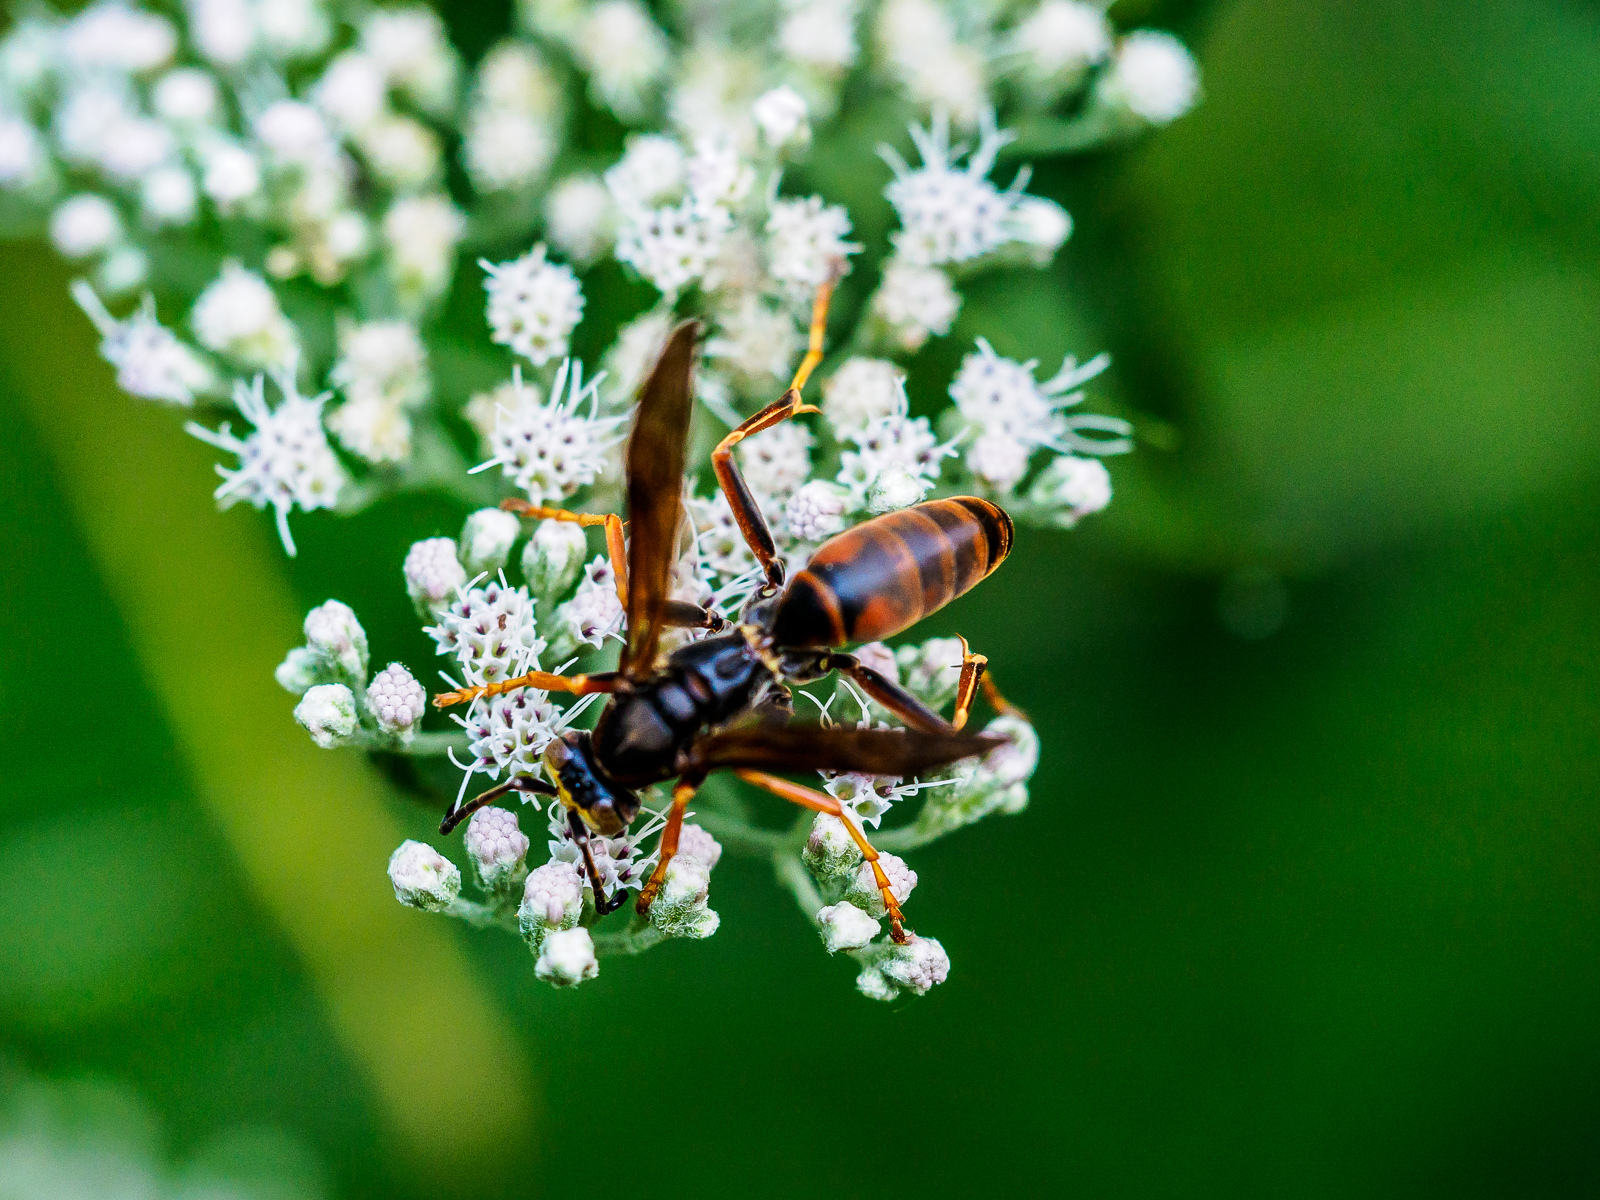 ltd-wasp-insect-photo-9090061